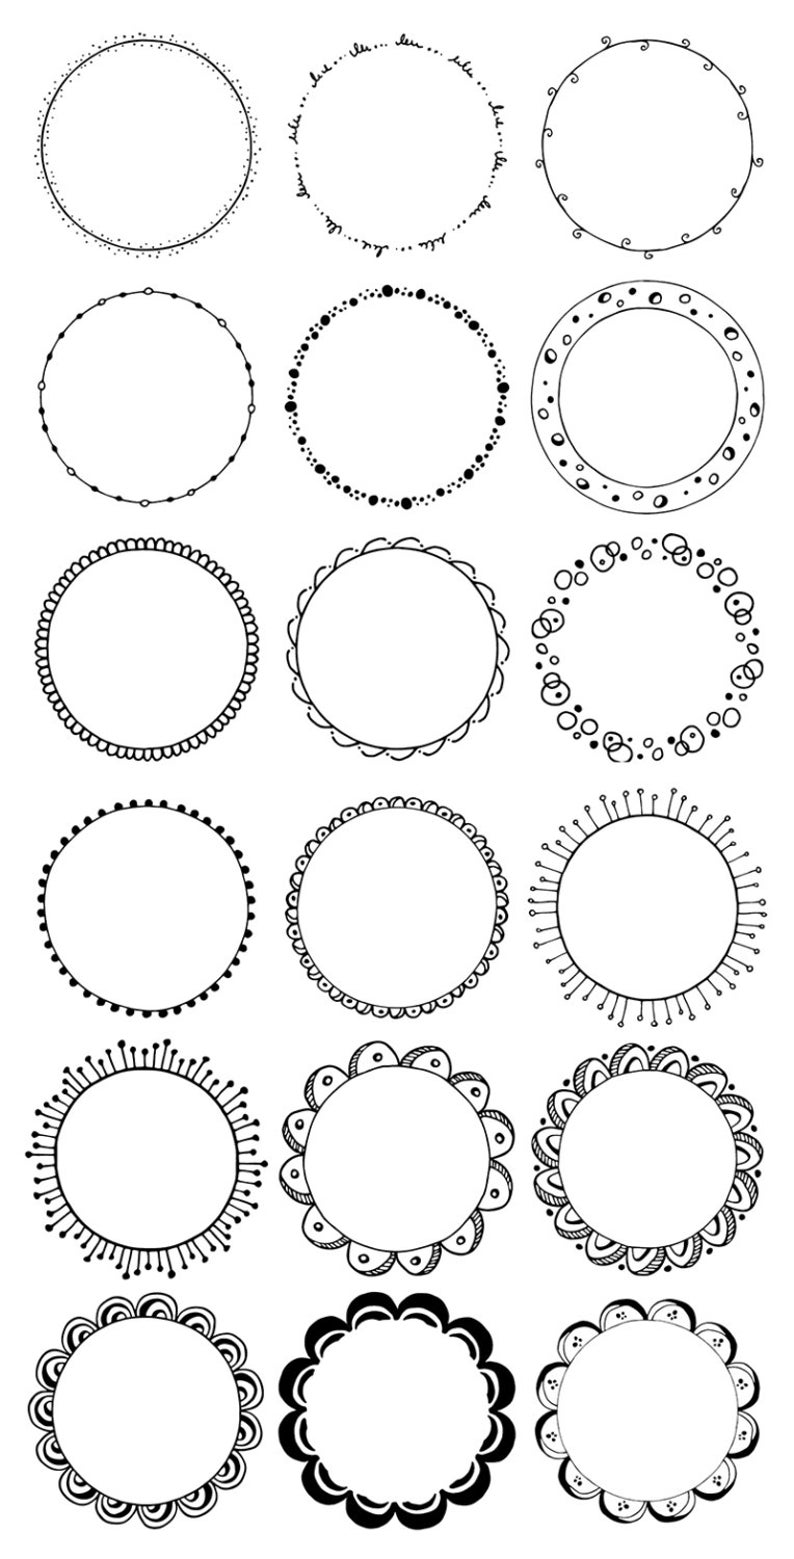 Round Frames Clipart Hand Drawn Circles Clipart Floral Boho Tribal Doodle Clip Art Waves Leaves Flowers Digital Circle Borders Png Circle Clipart How To Draw Hands Circle Borders